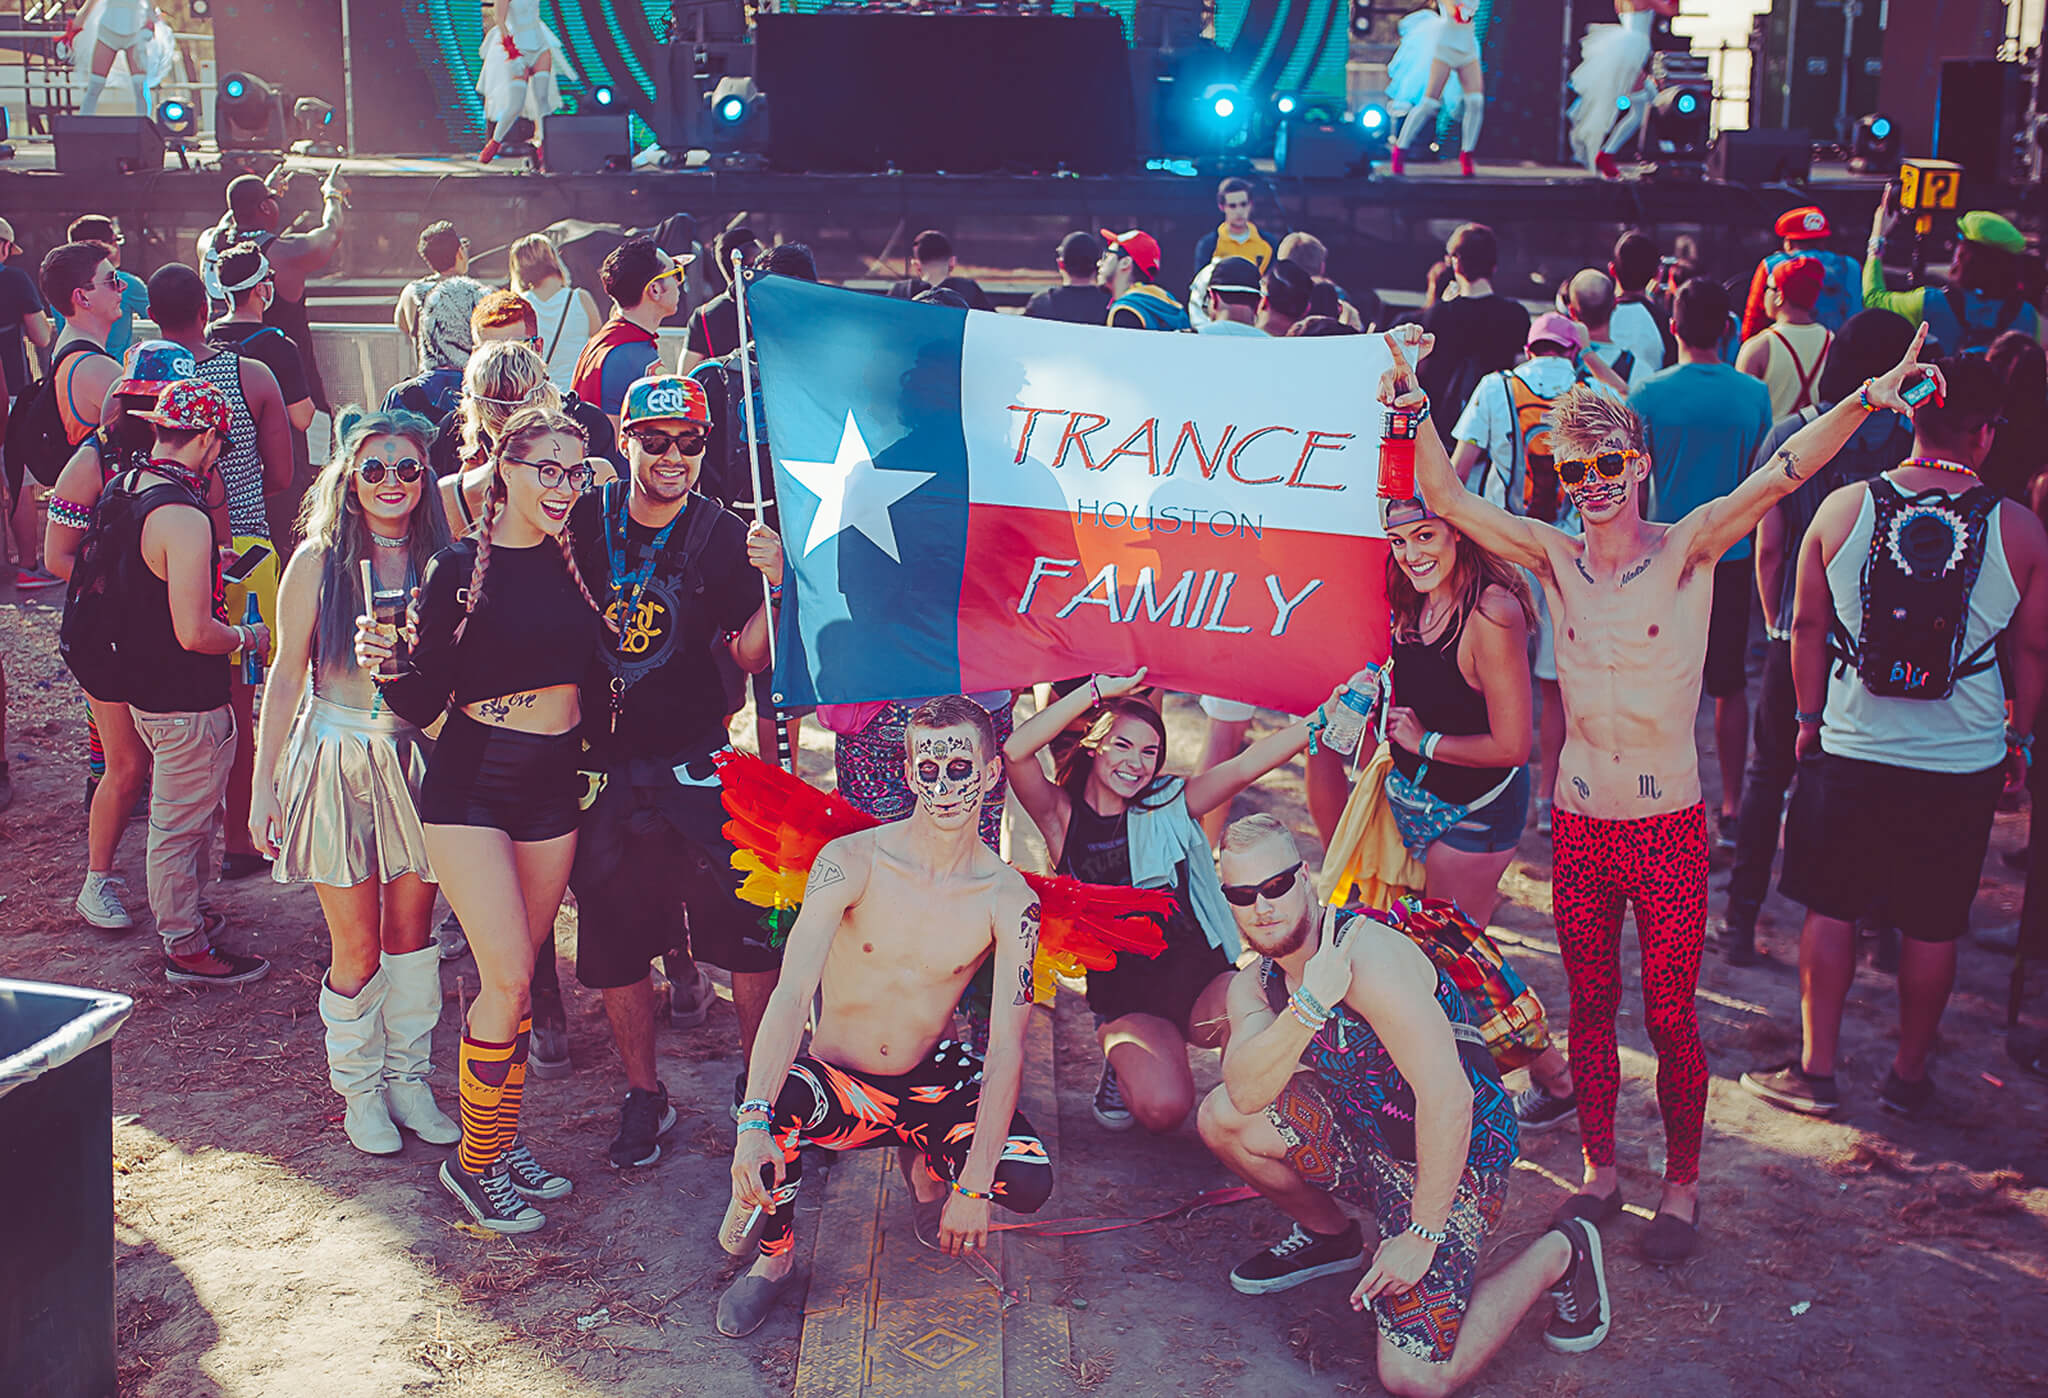 texas trance fam at something wicked festival